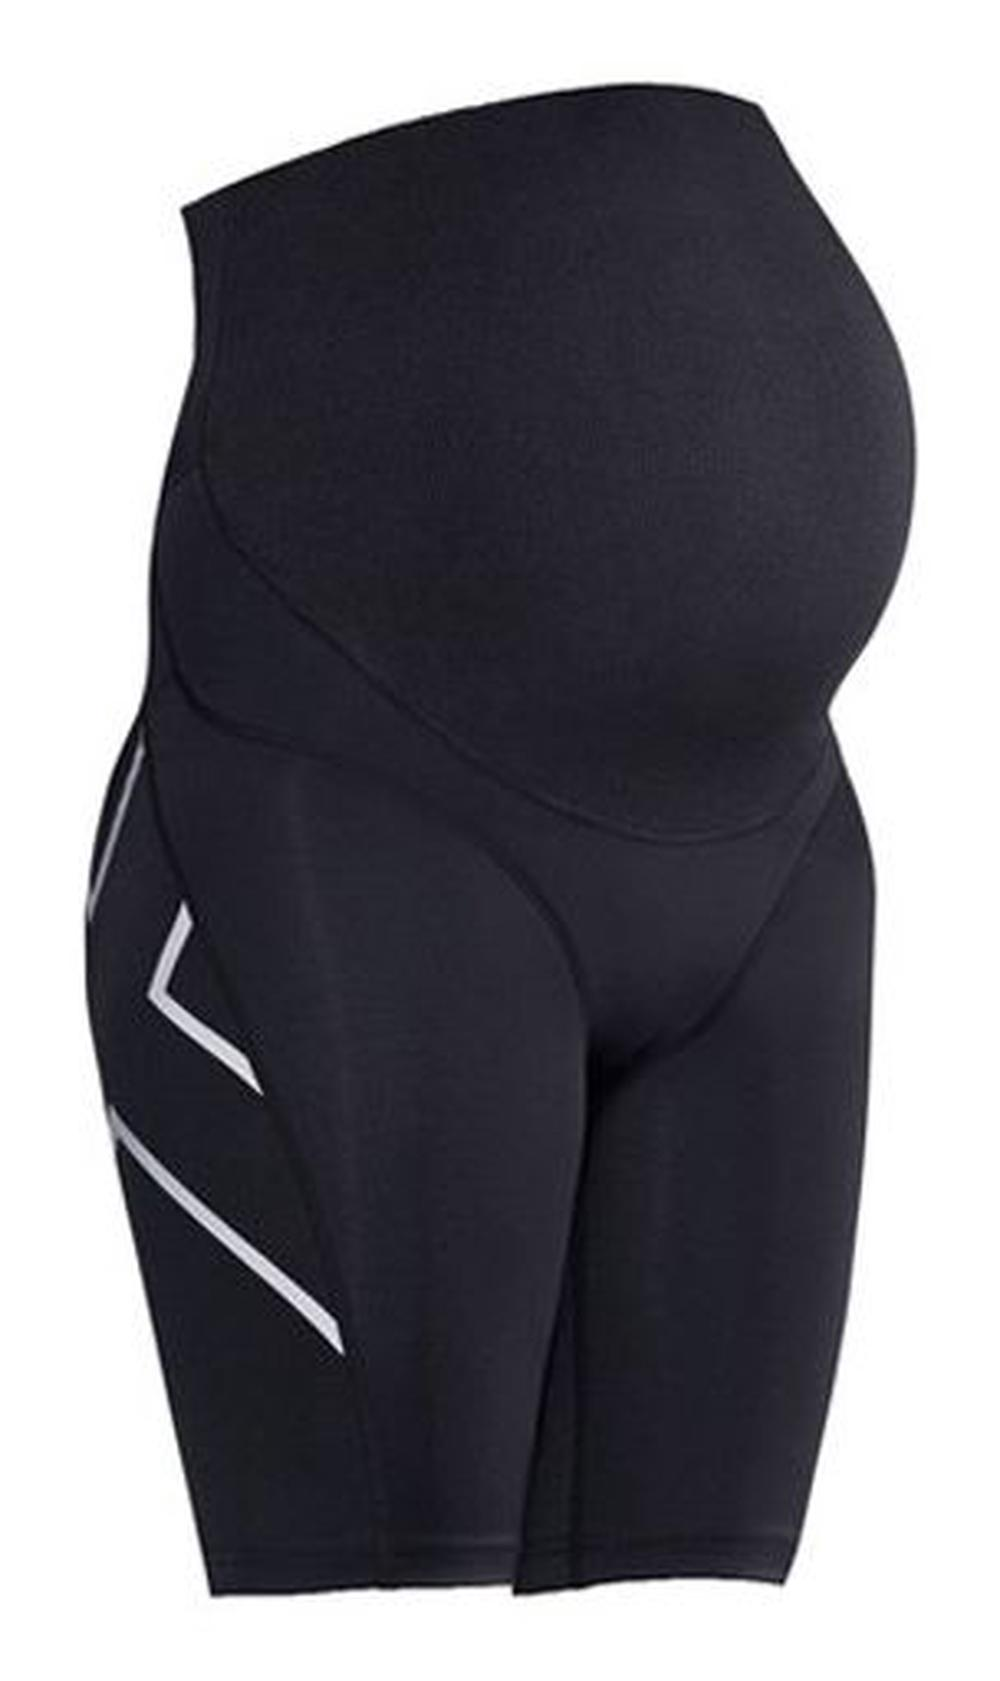 e7f63889a8105 2XU Prenatal Active Shorts - Medium | Buy online at The Nile